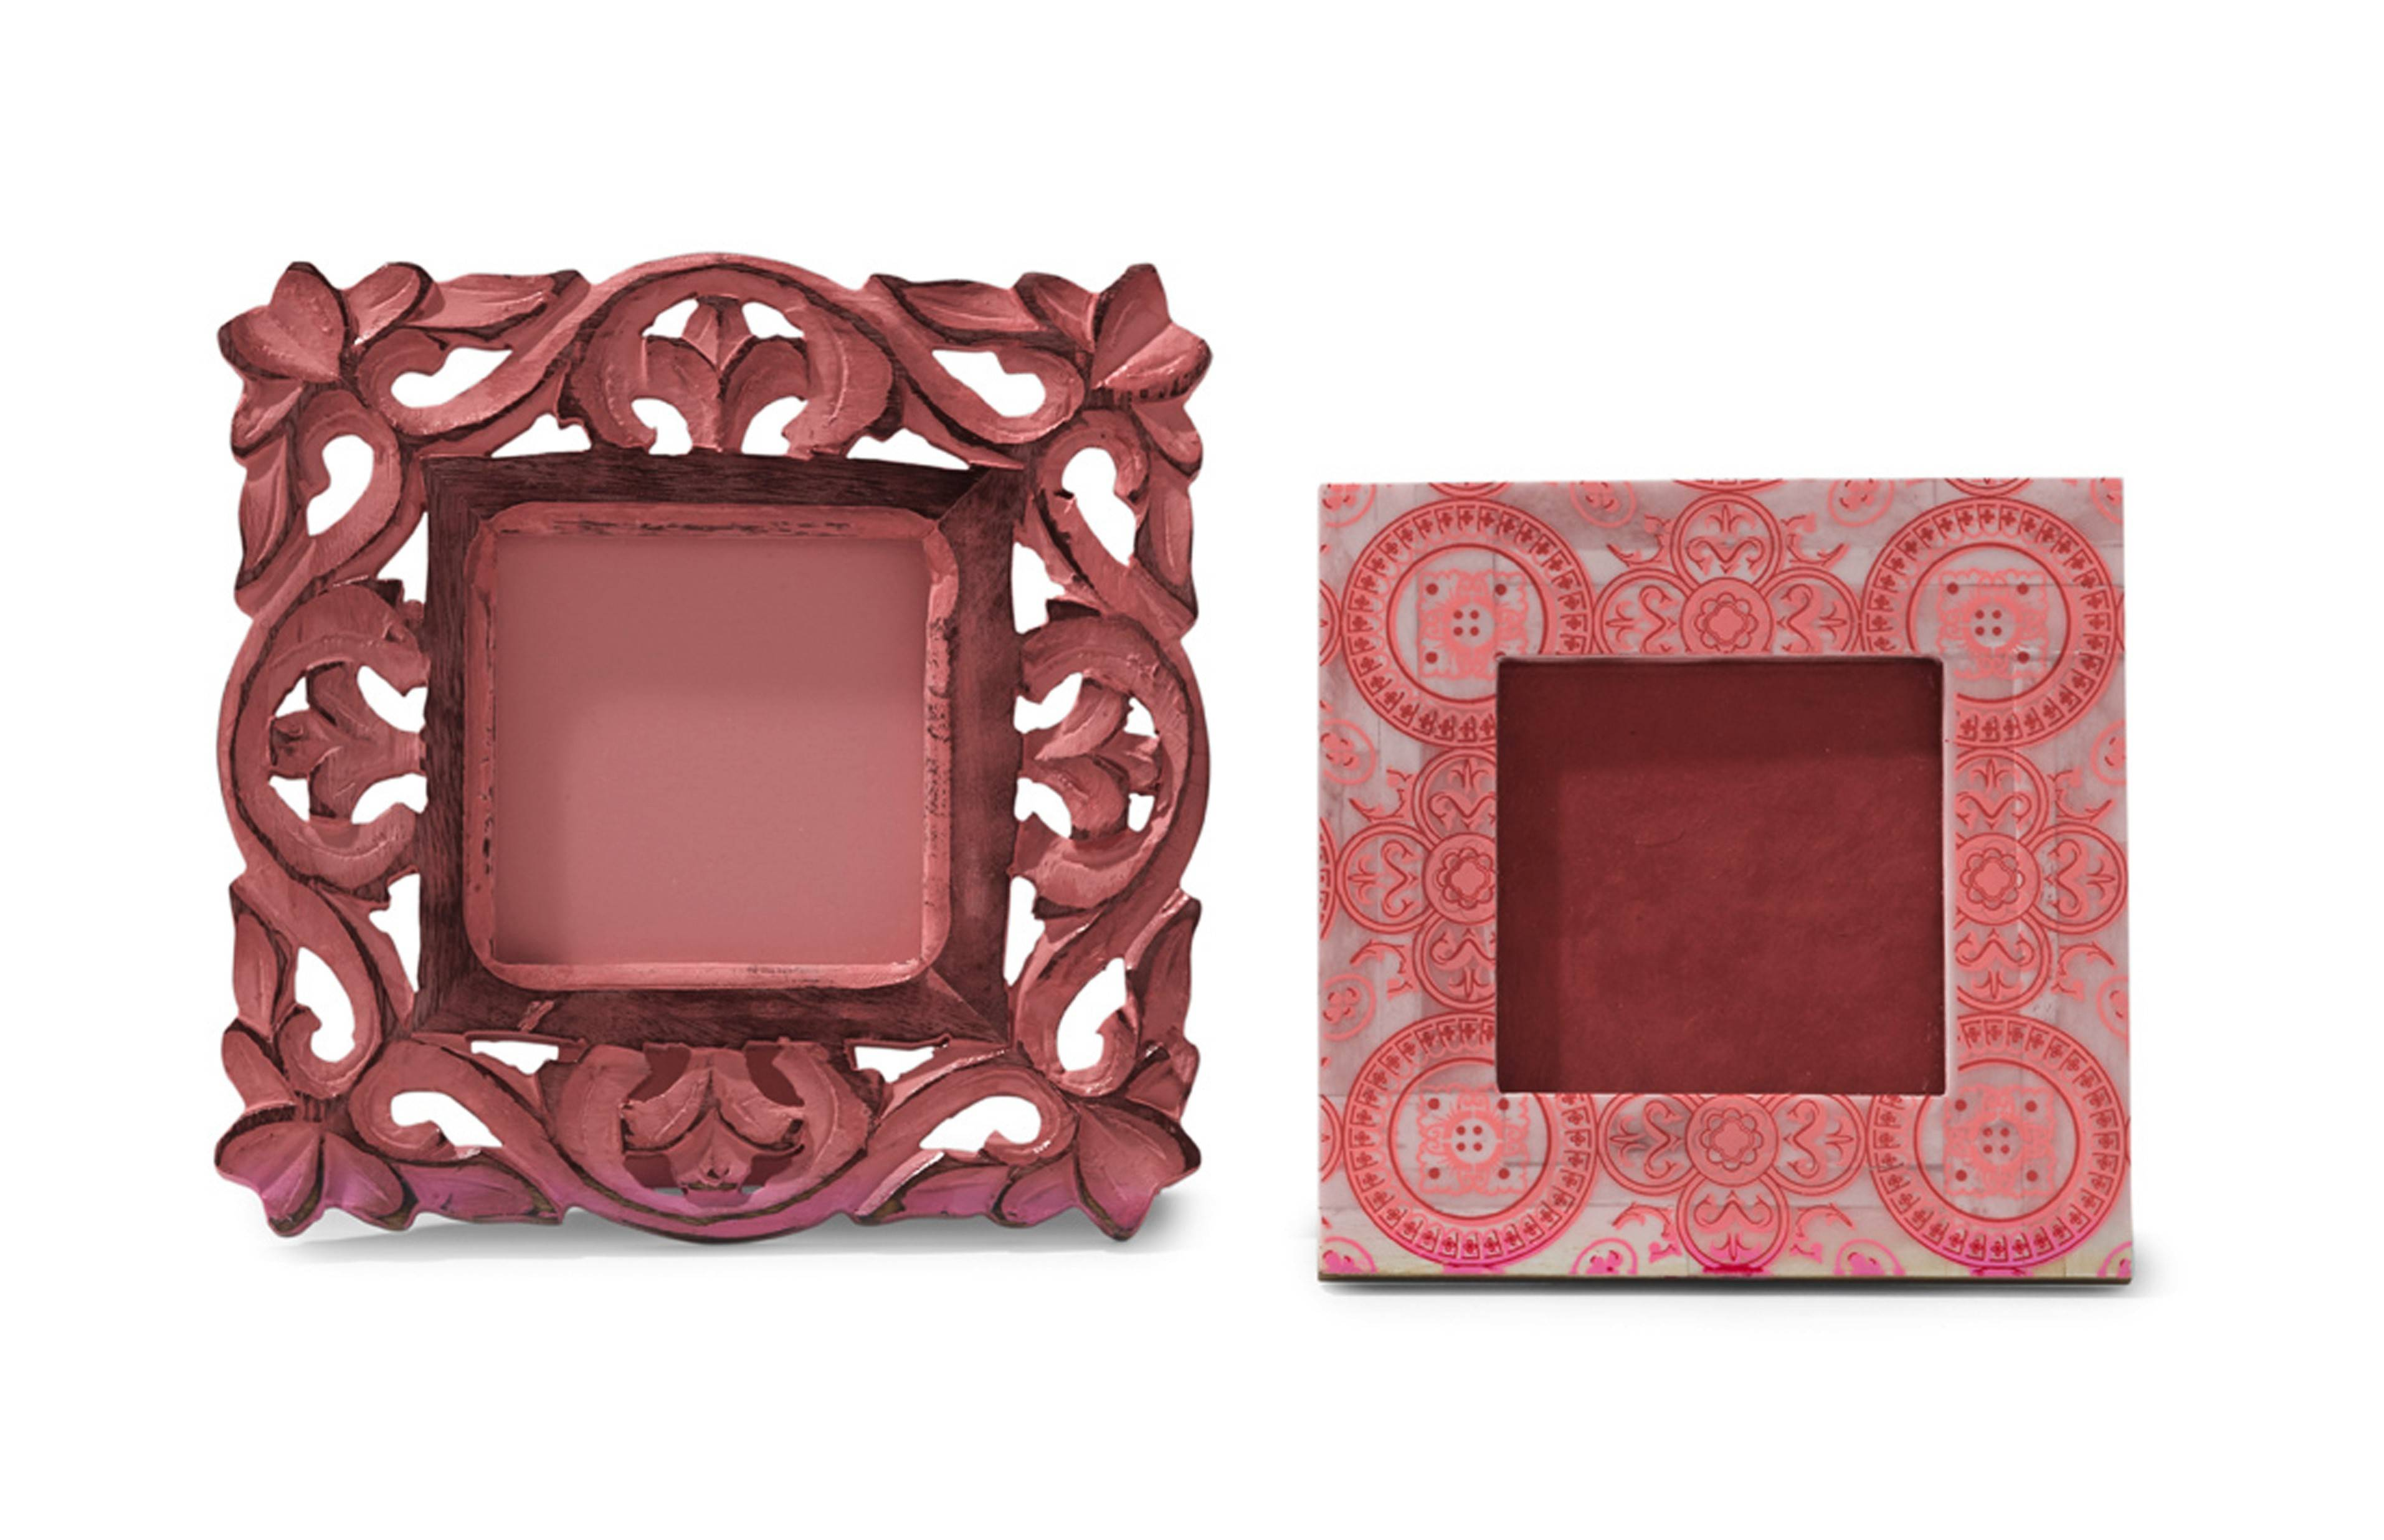 Pink-tinged picture frames in interesting textures and patterns add this color in an easy and interesting way.